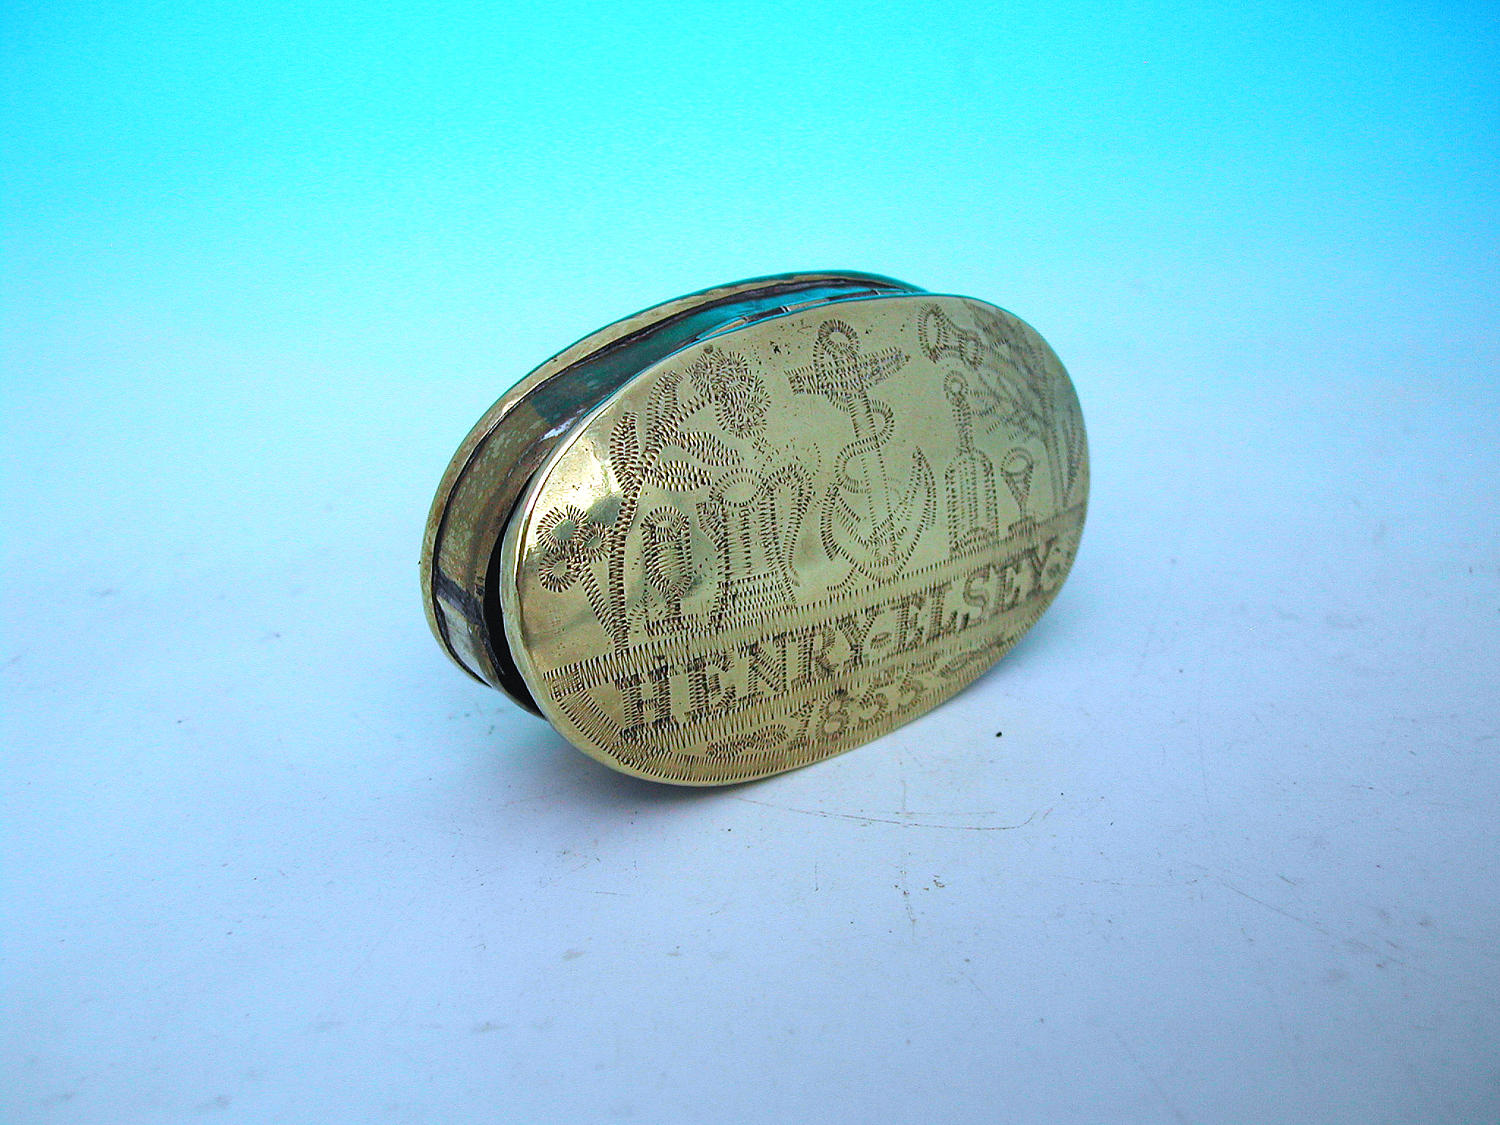 Antique 19thc Dated And Engraved Brass Snuff Box. English C1850 - 55